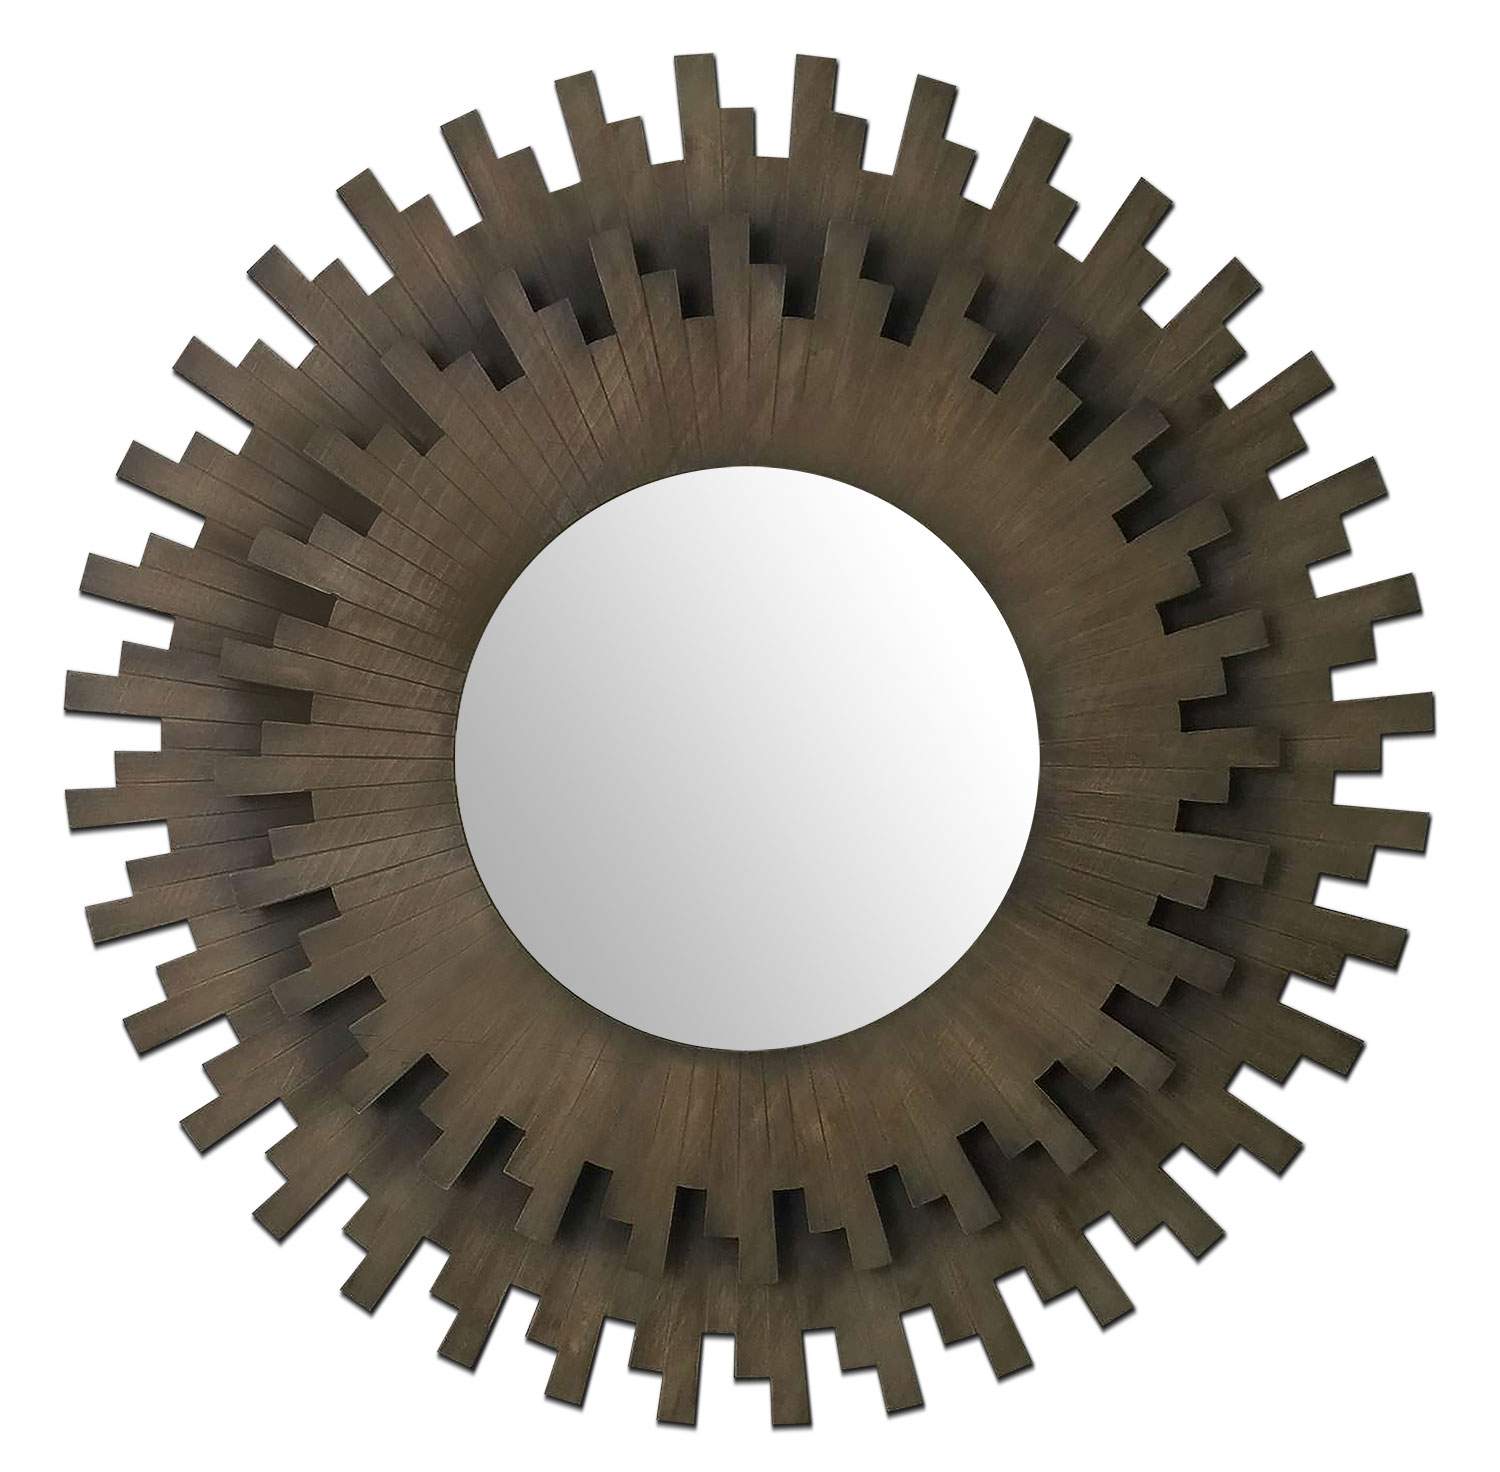 Sunburst Round Mirror - Bronze